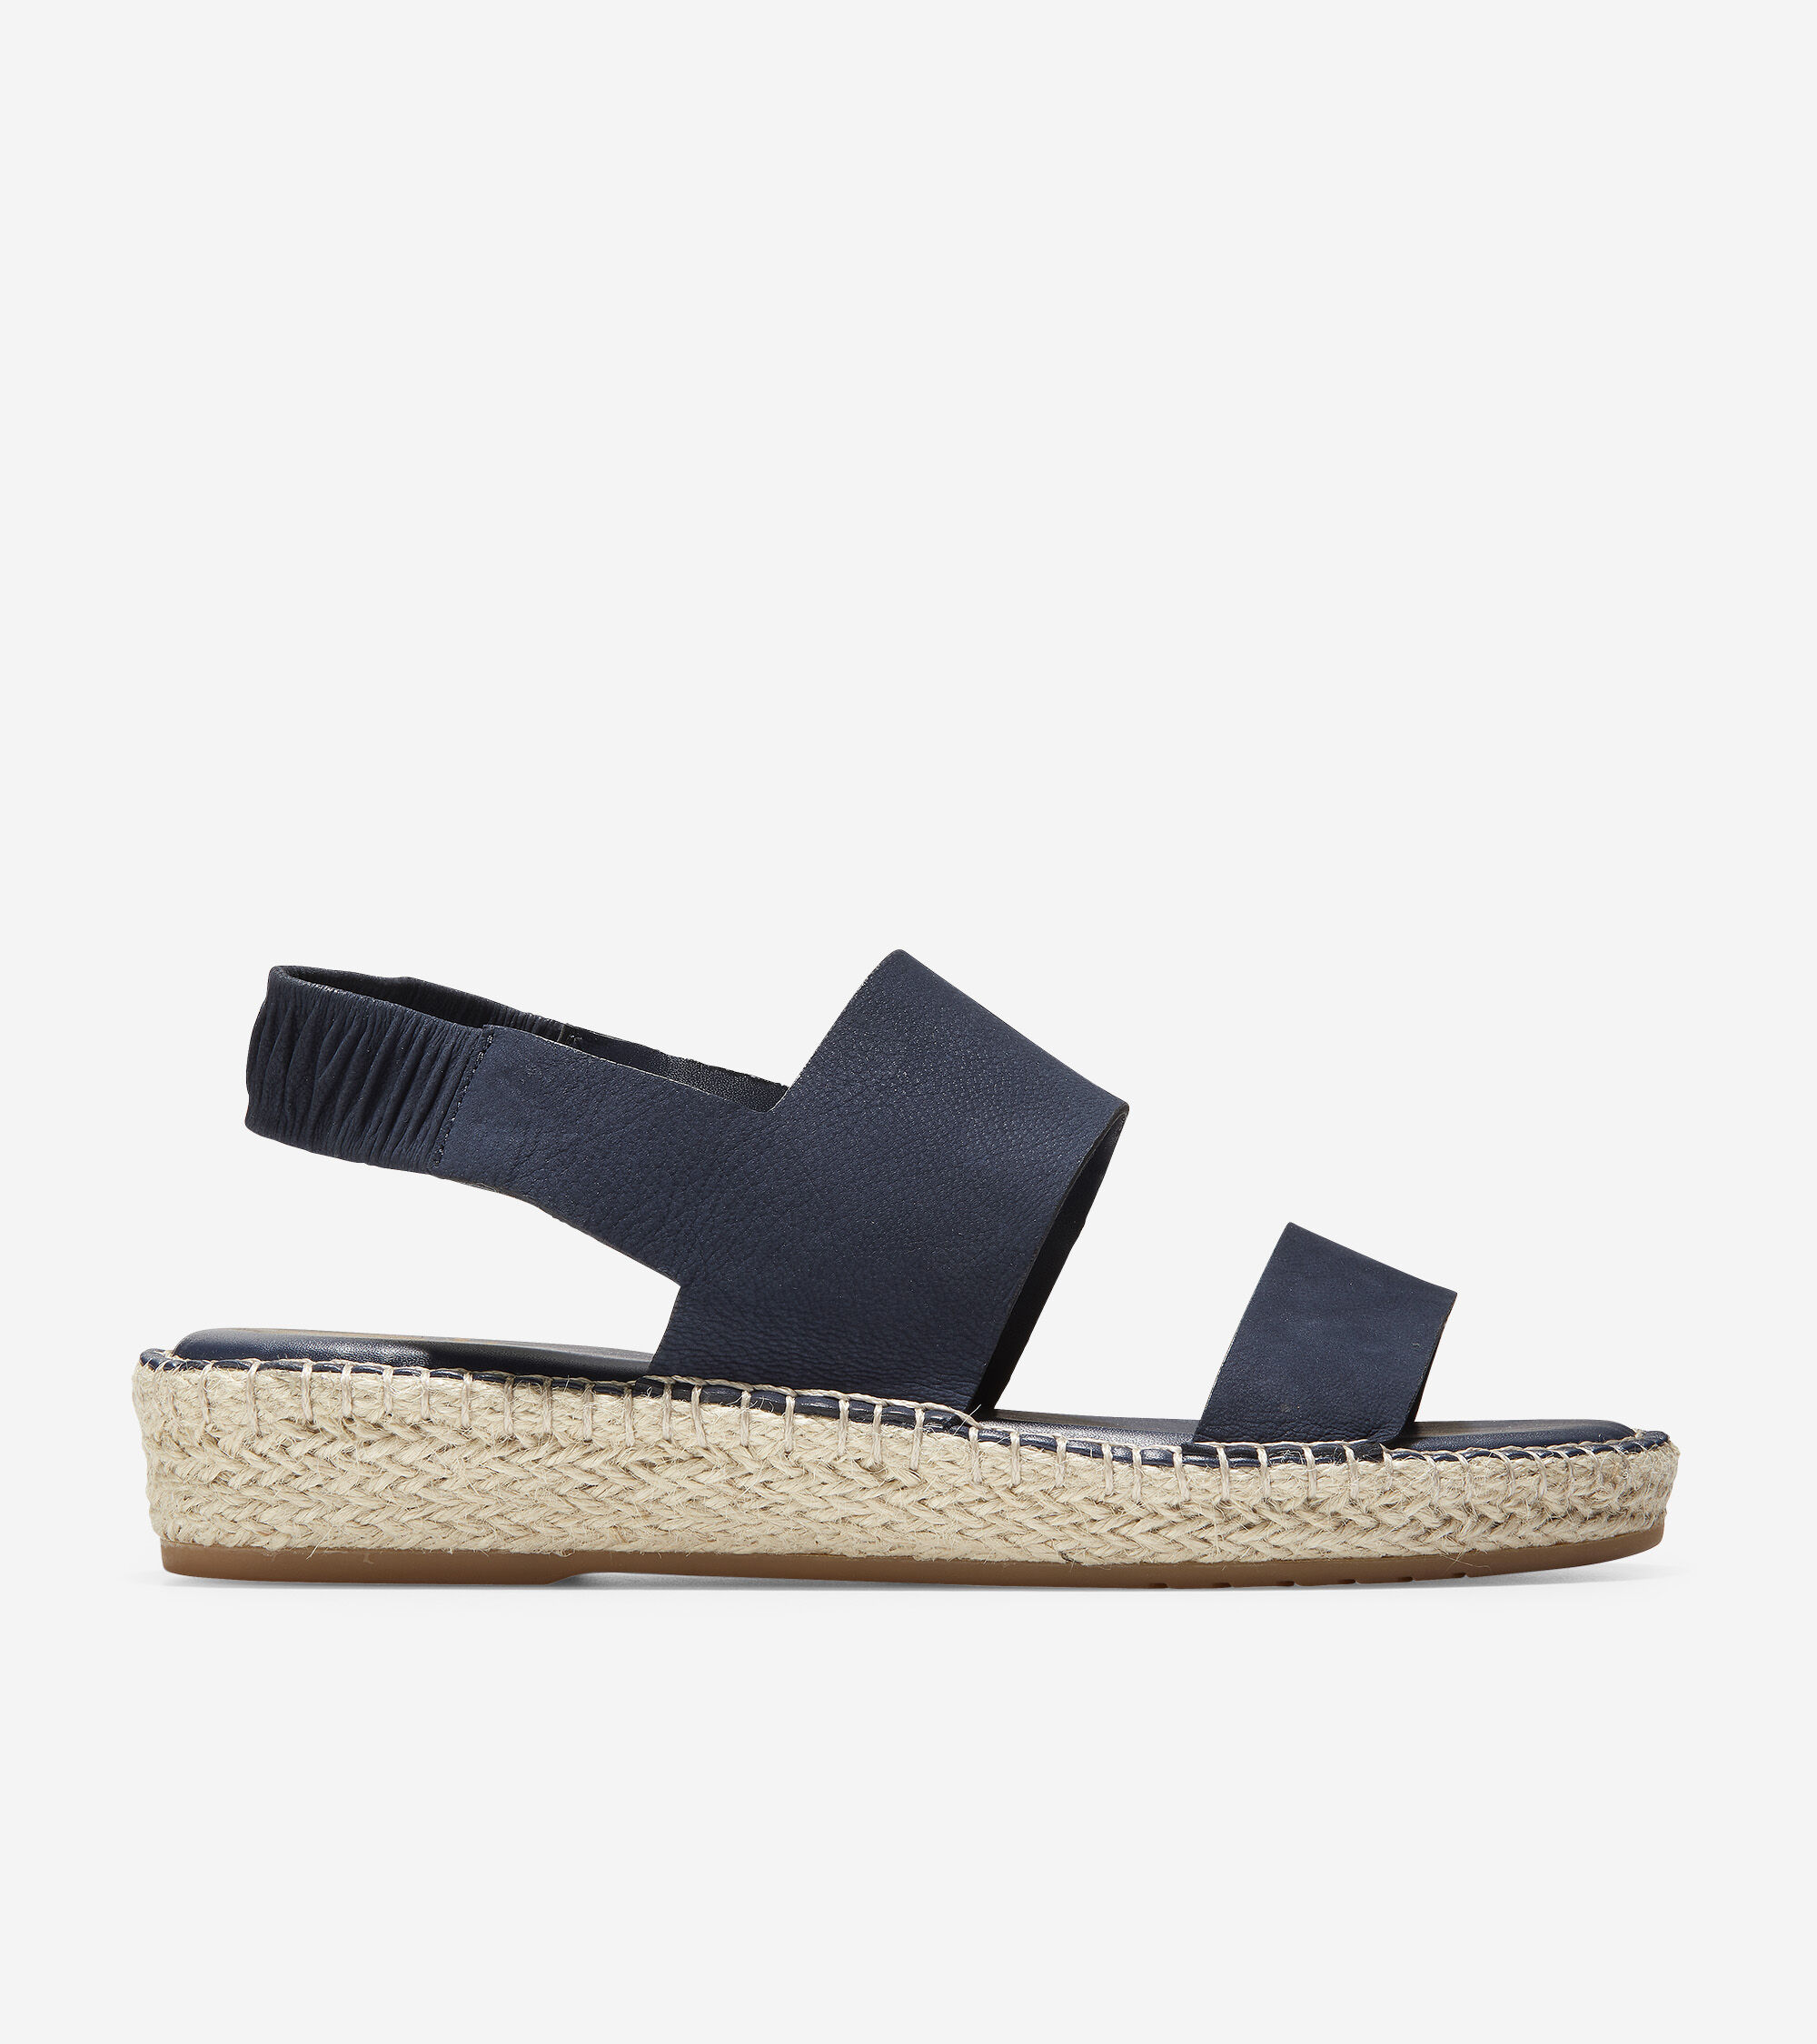 87afa56a376 Women s Cloudfeel Espadrille Wedges Sandals in Marine Blue